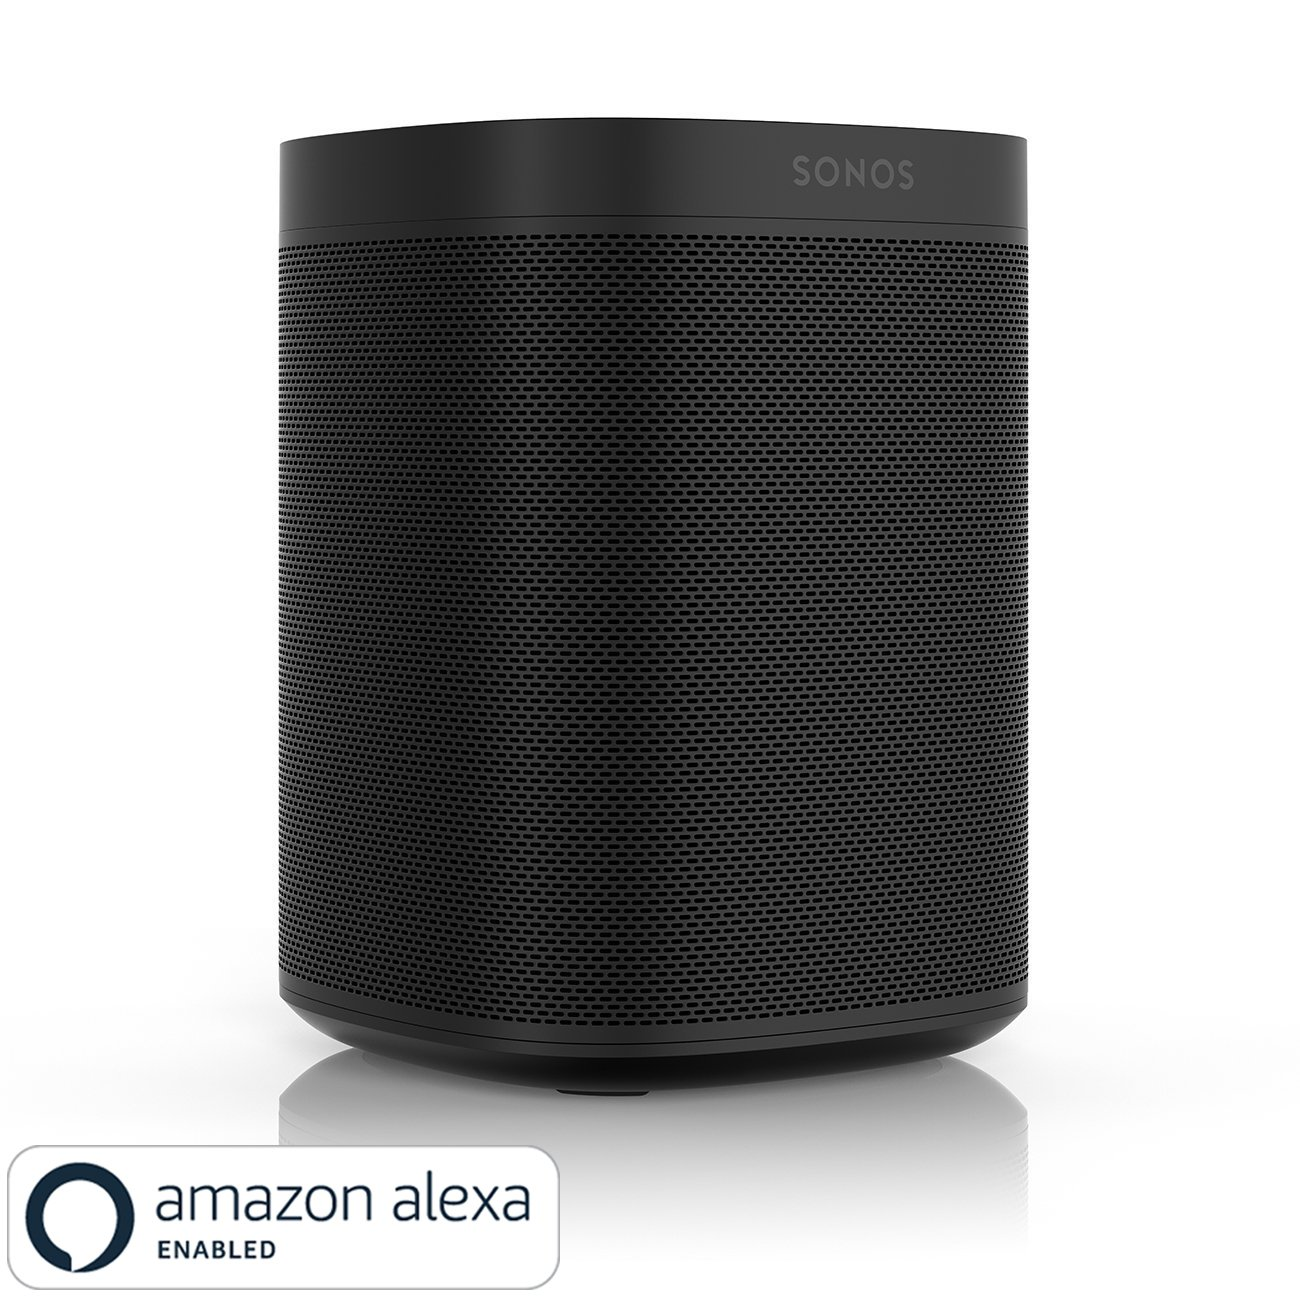 All-new Sonos One - Smart Speaker with Alexa voice control built-In. Compact size with incredible sound for any room. (black) by Sonos